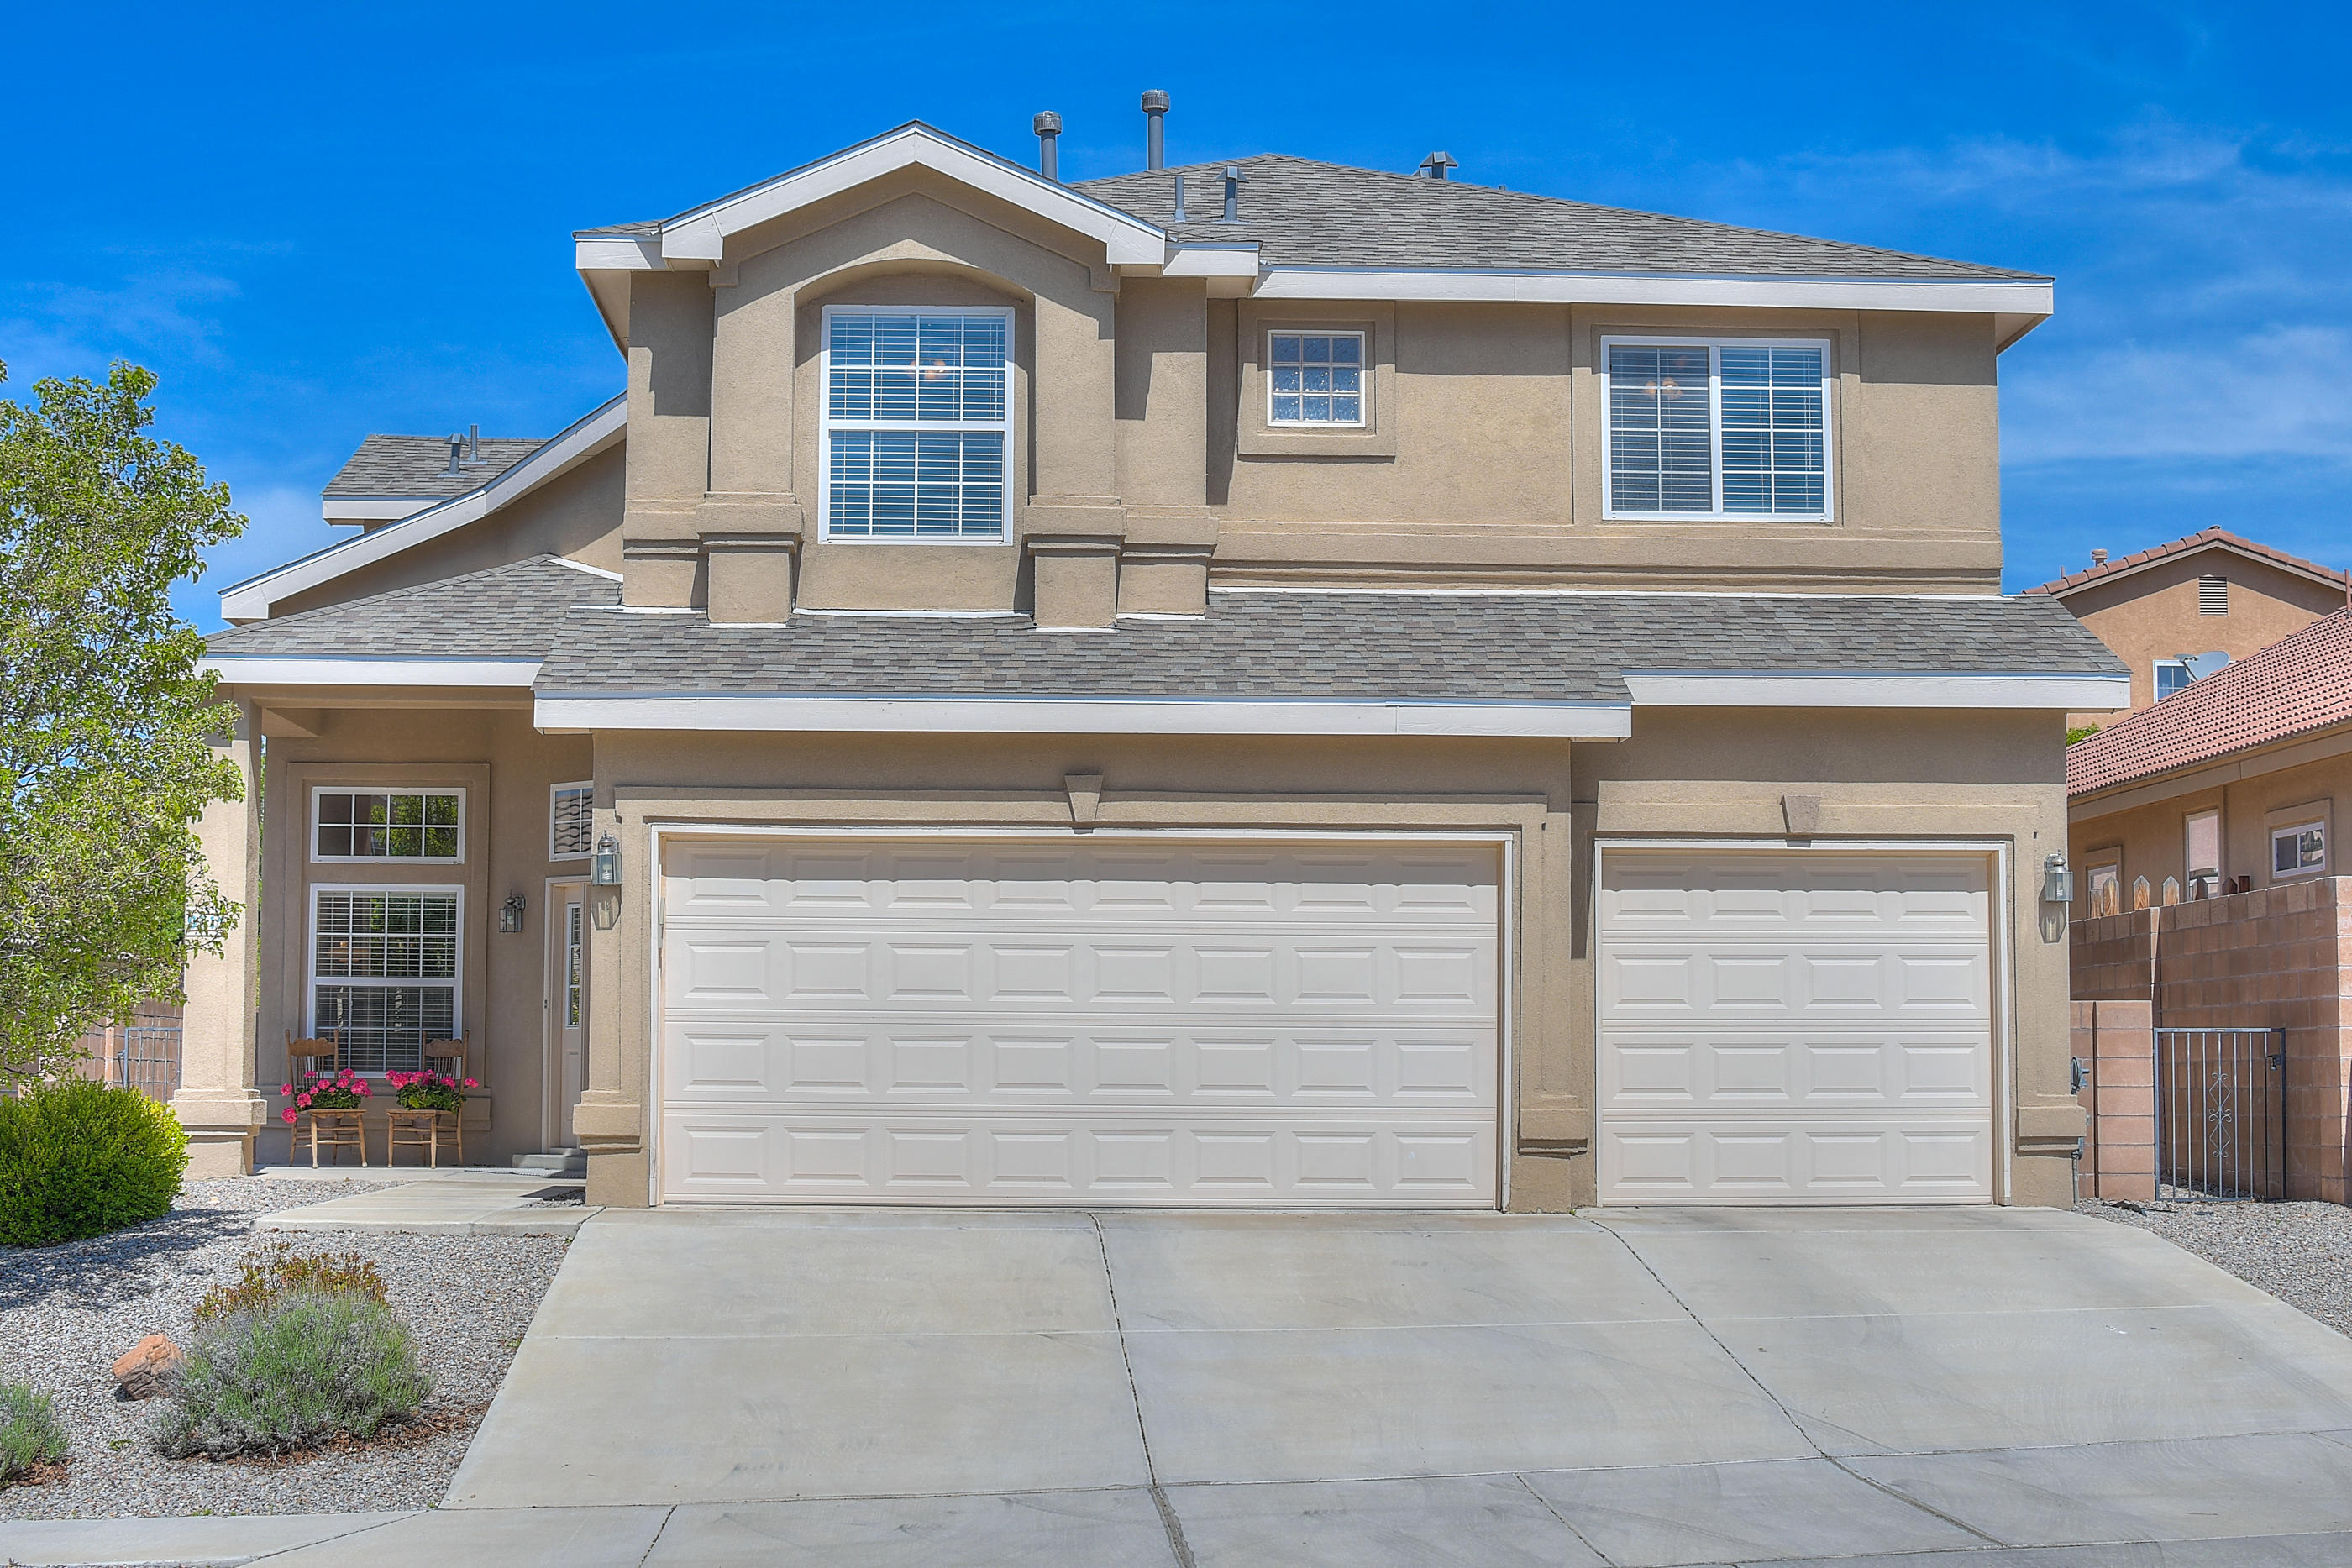 9315 NW Drolet Drive, Northwest Albuquerque and Northwest Heights, New Mexico